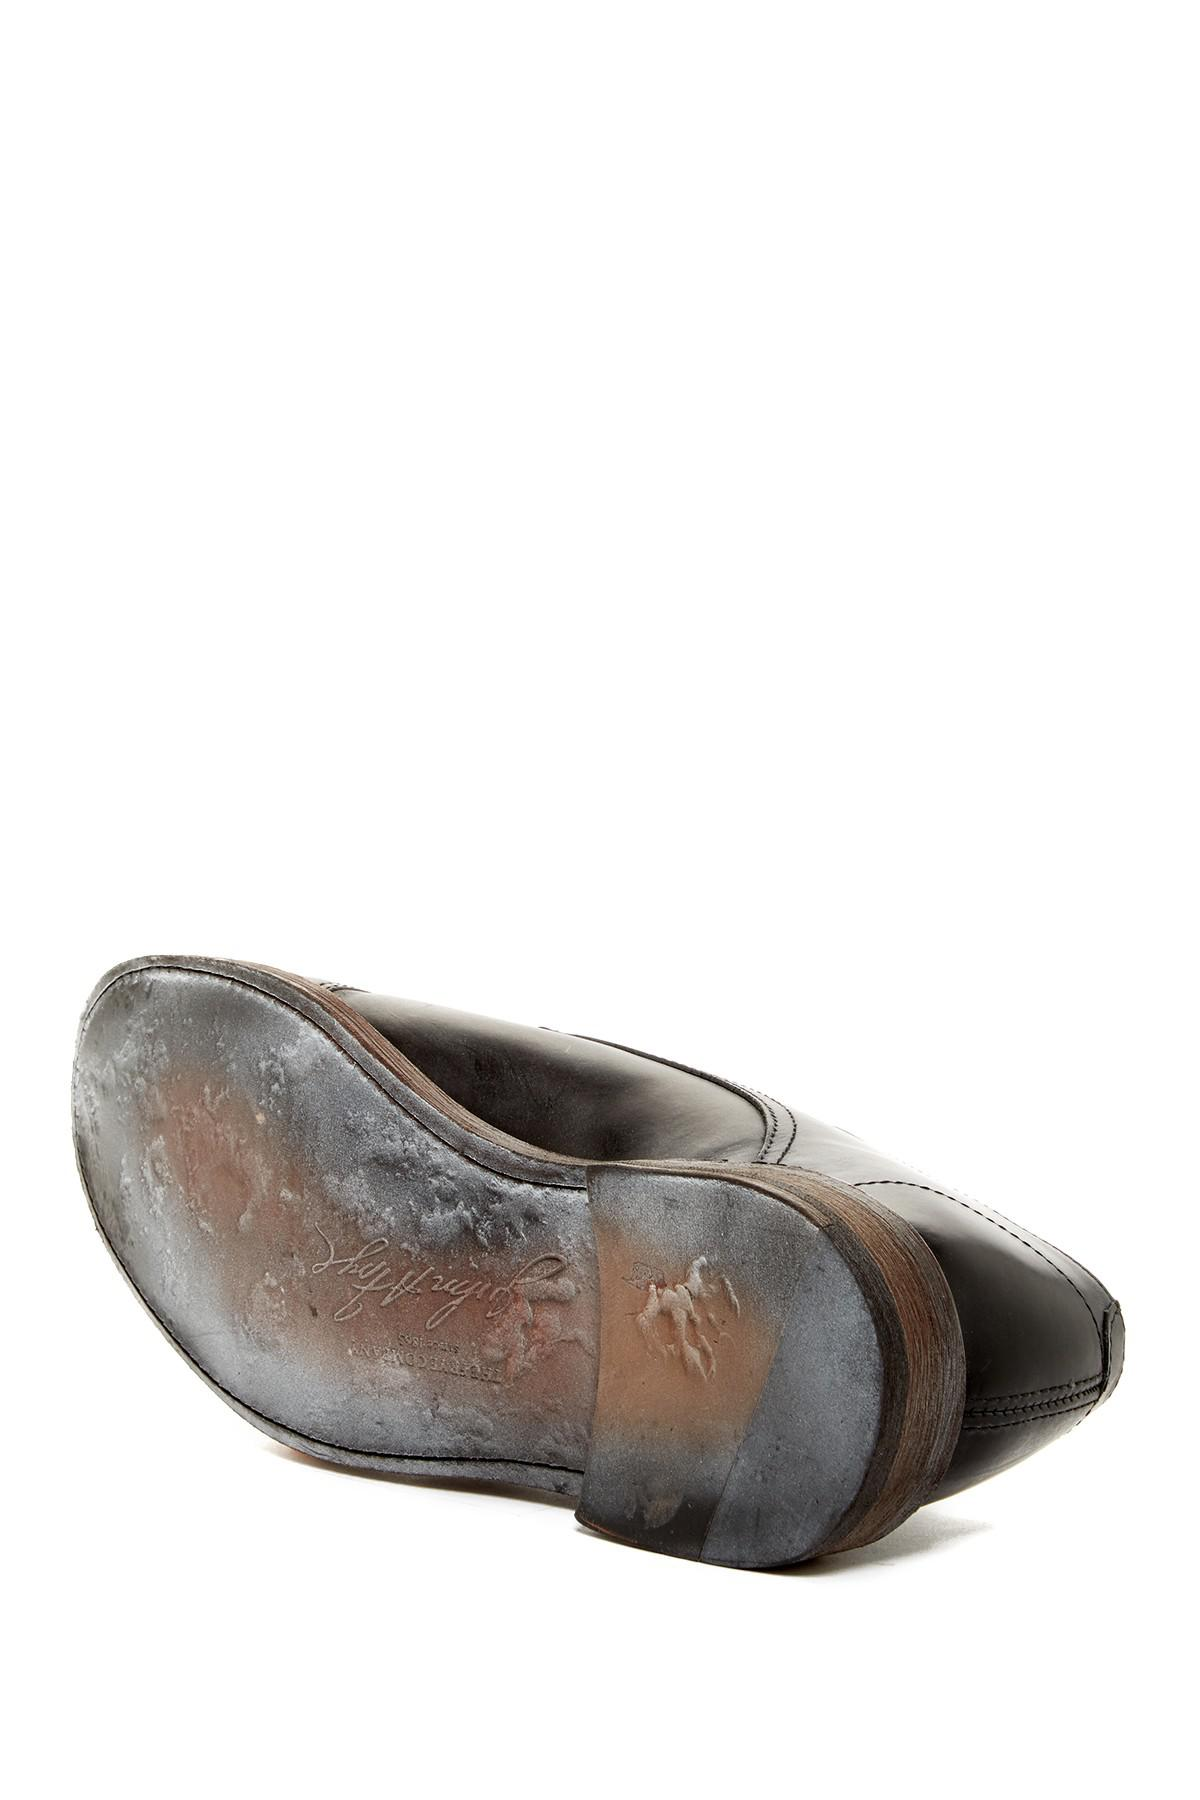 Frye Leather James Double Monk Strap Oxford In Black For